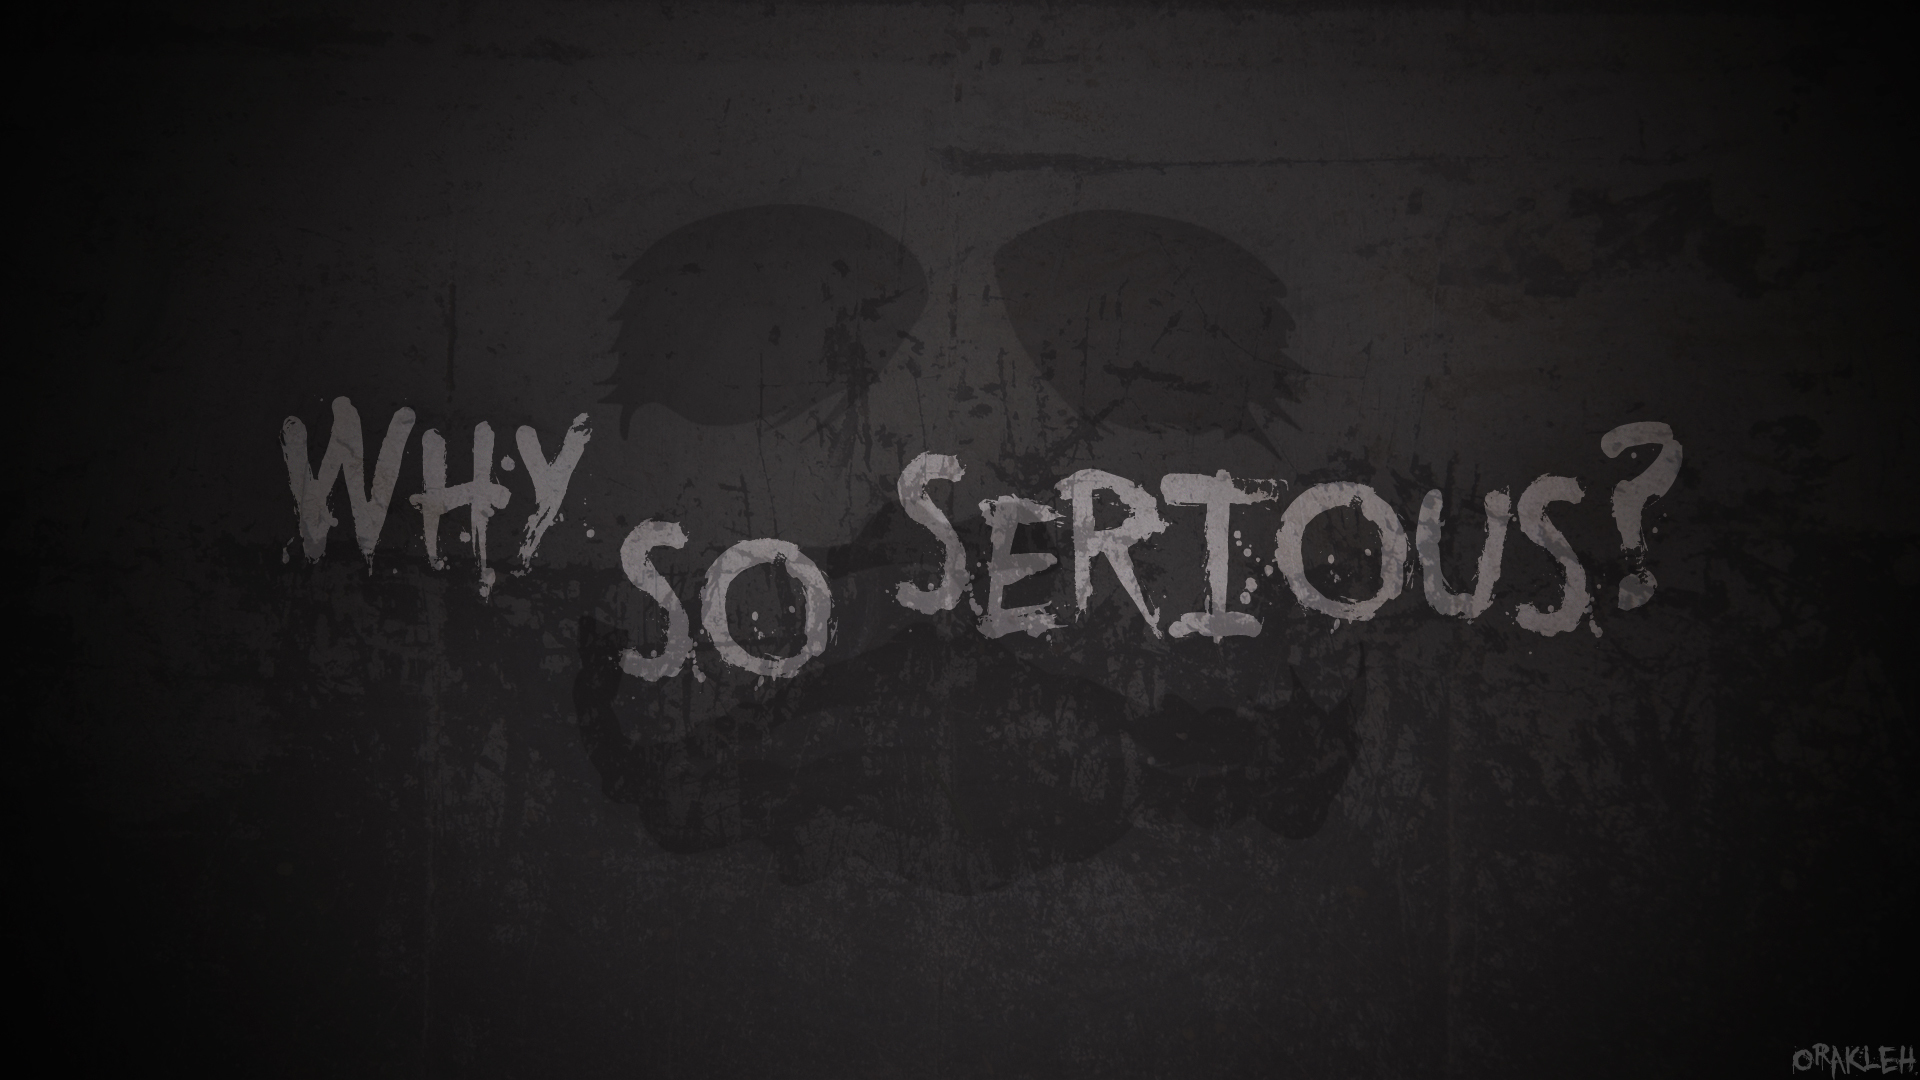 Why So Serious Hd Wallpaper